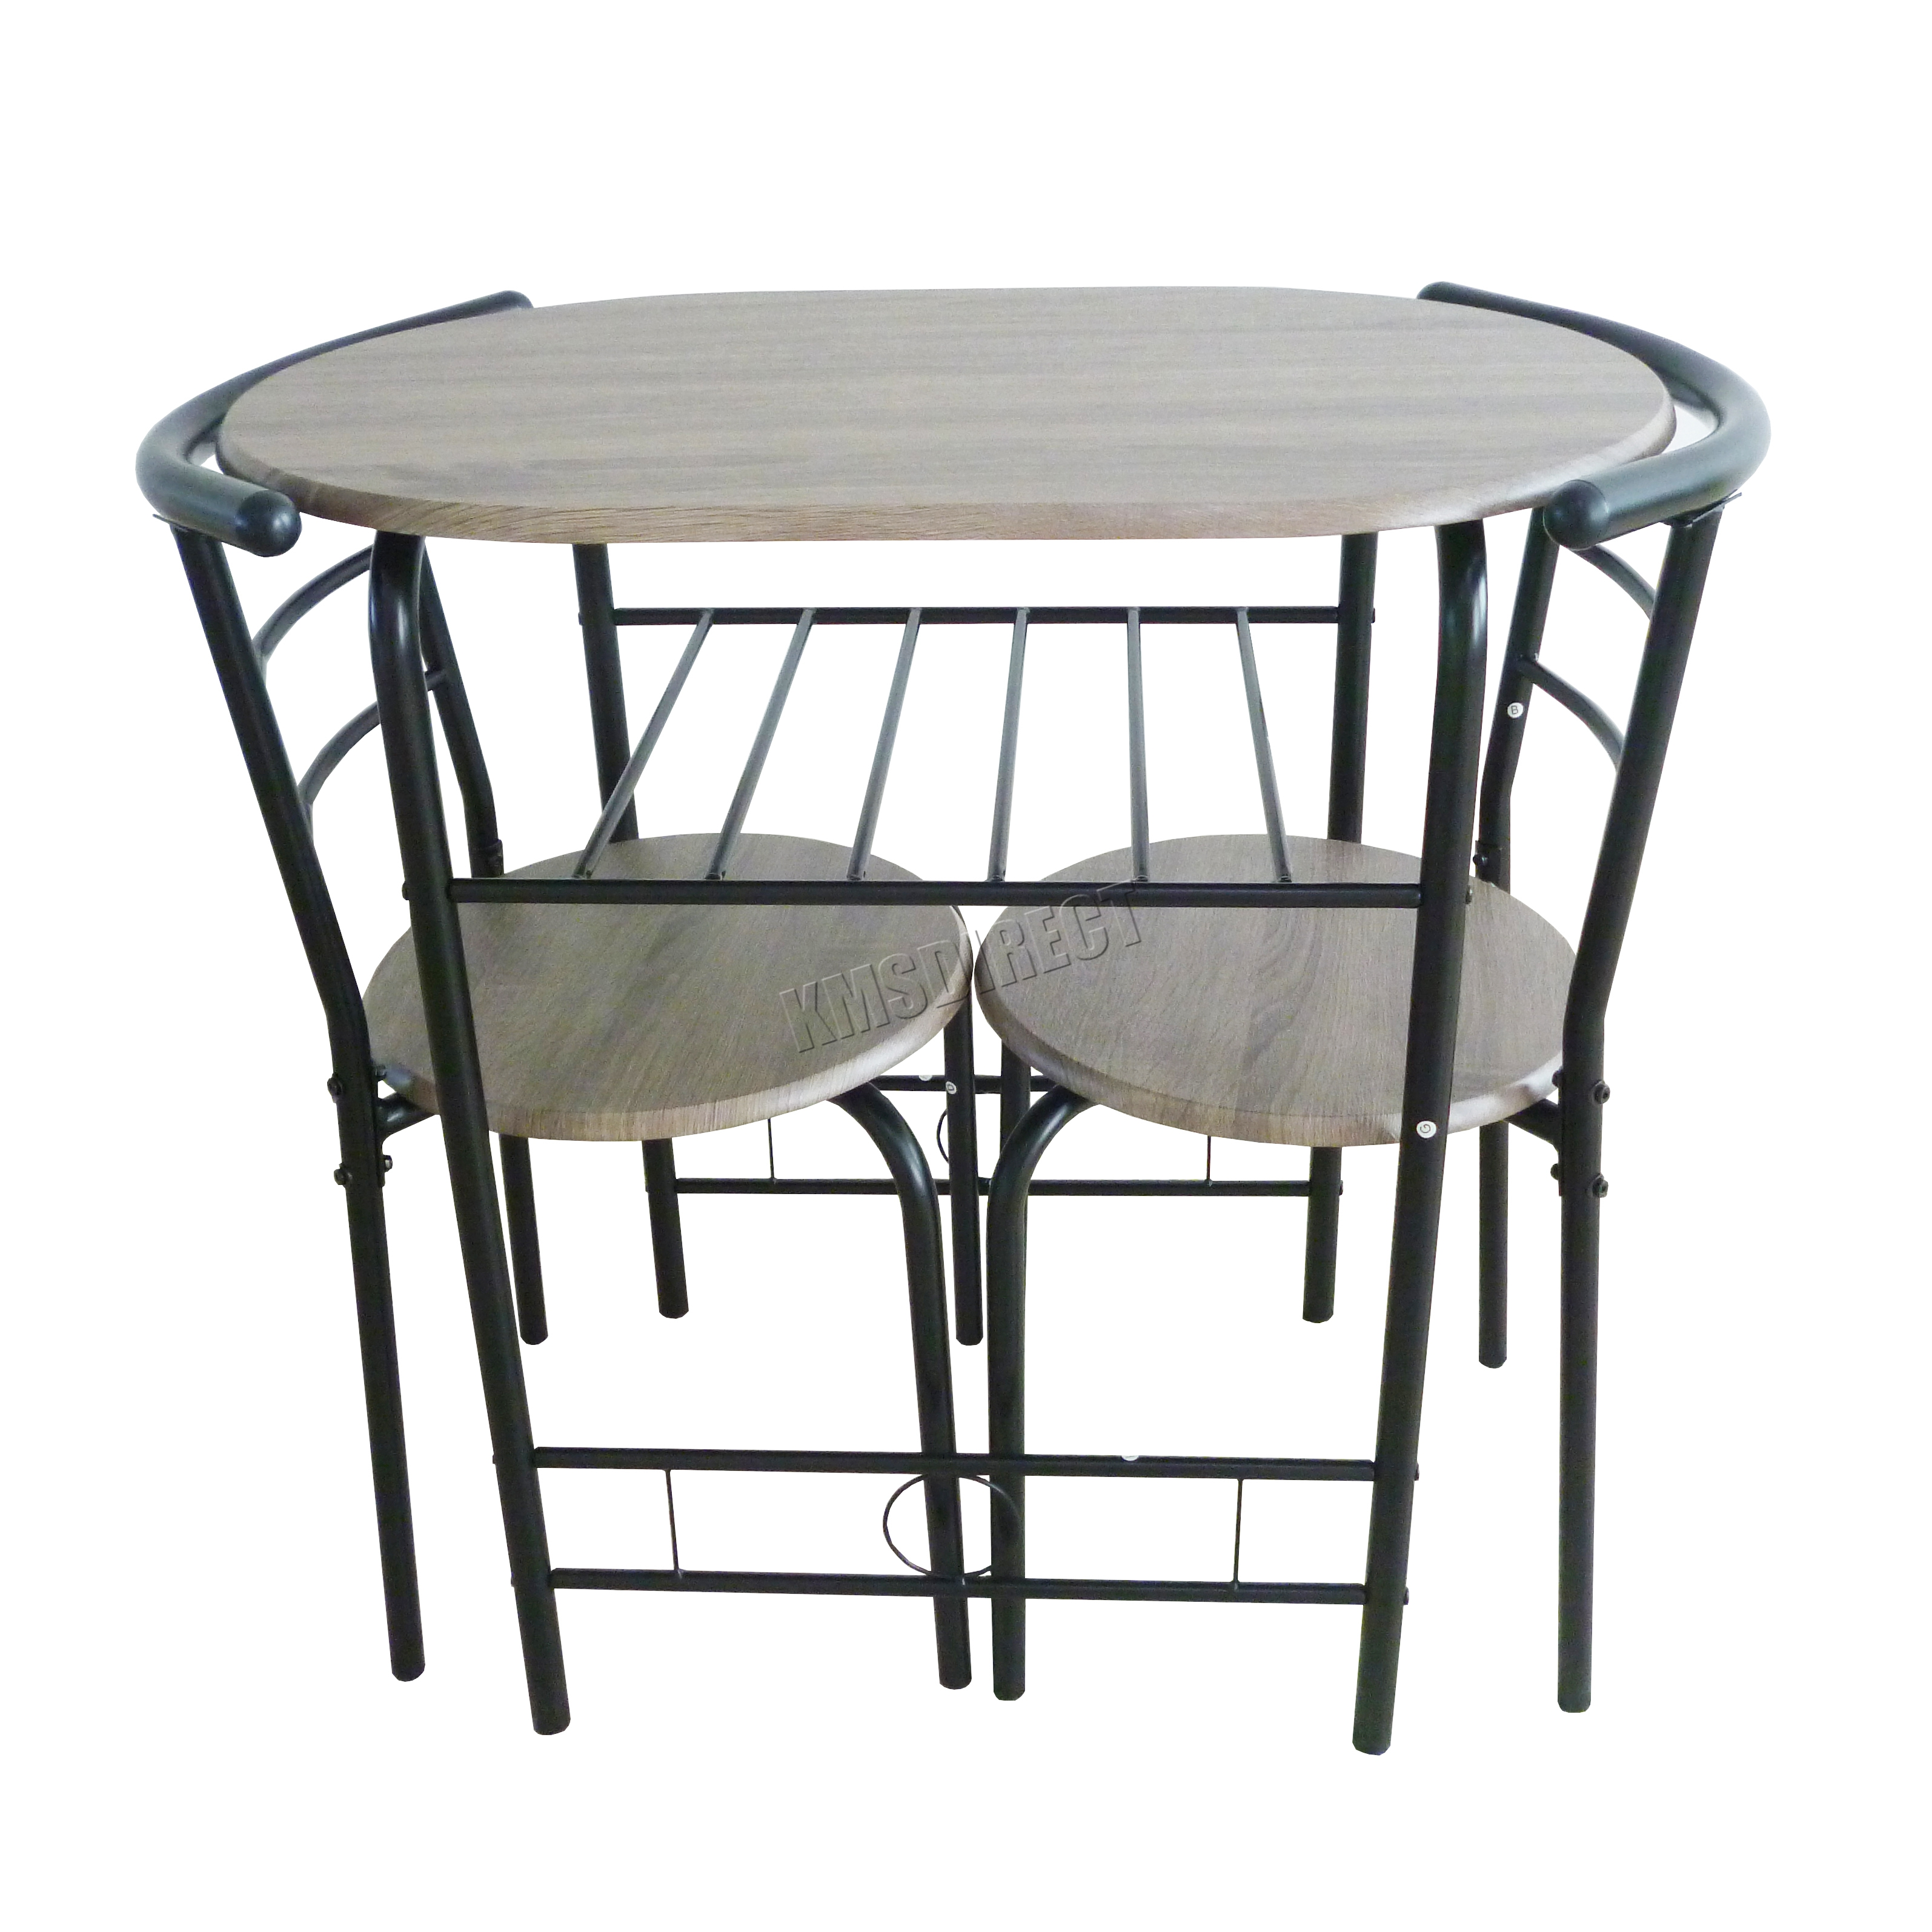 2 Chair Dining Table Foxhunter Compact Dining Table Breakfast Bar 2 Chair Set